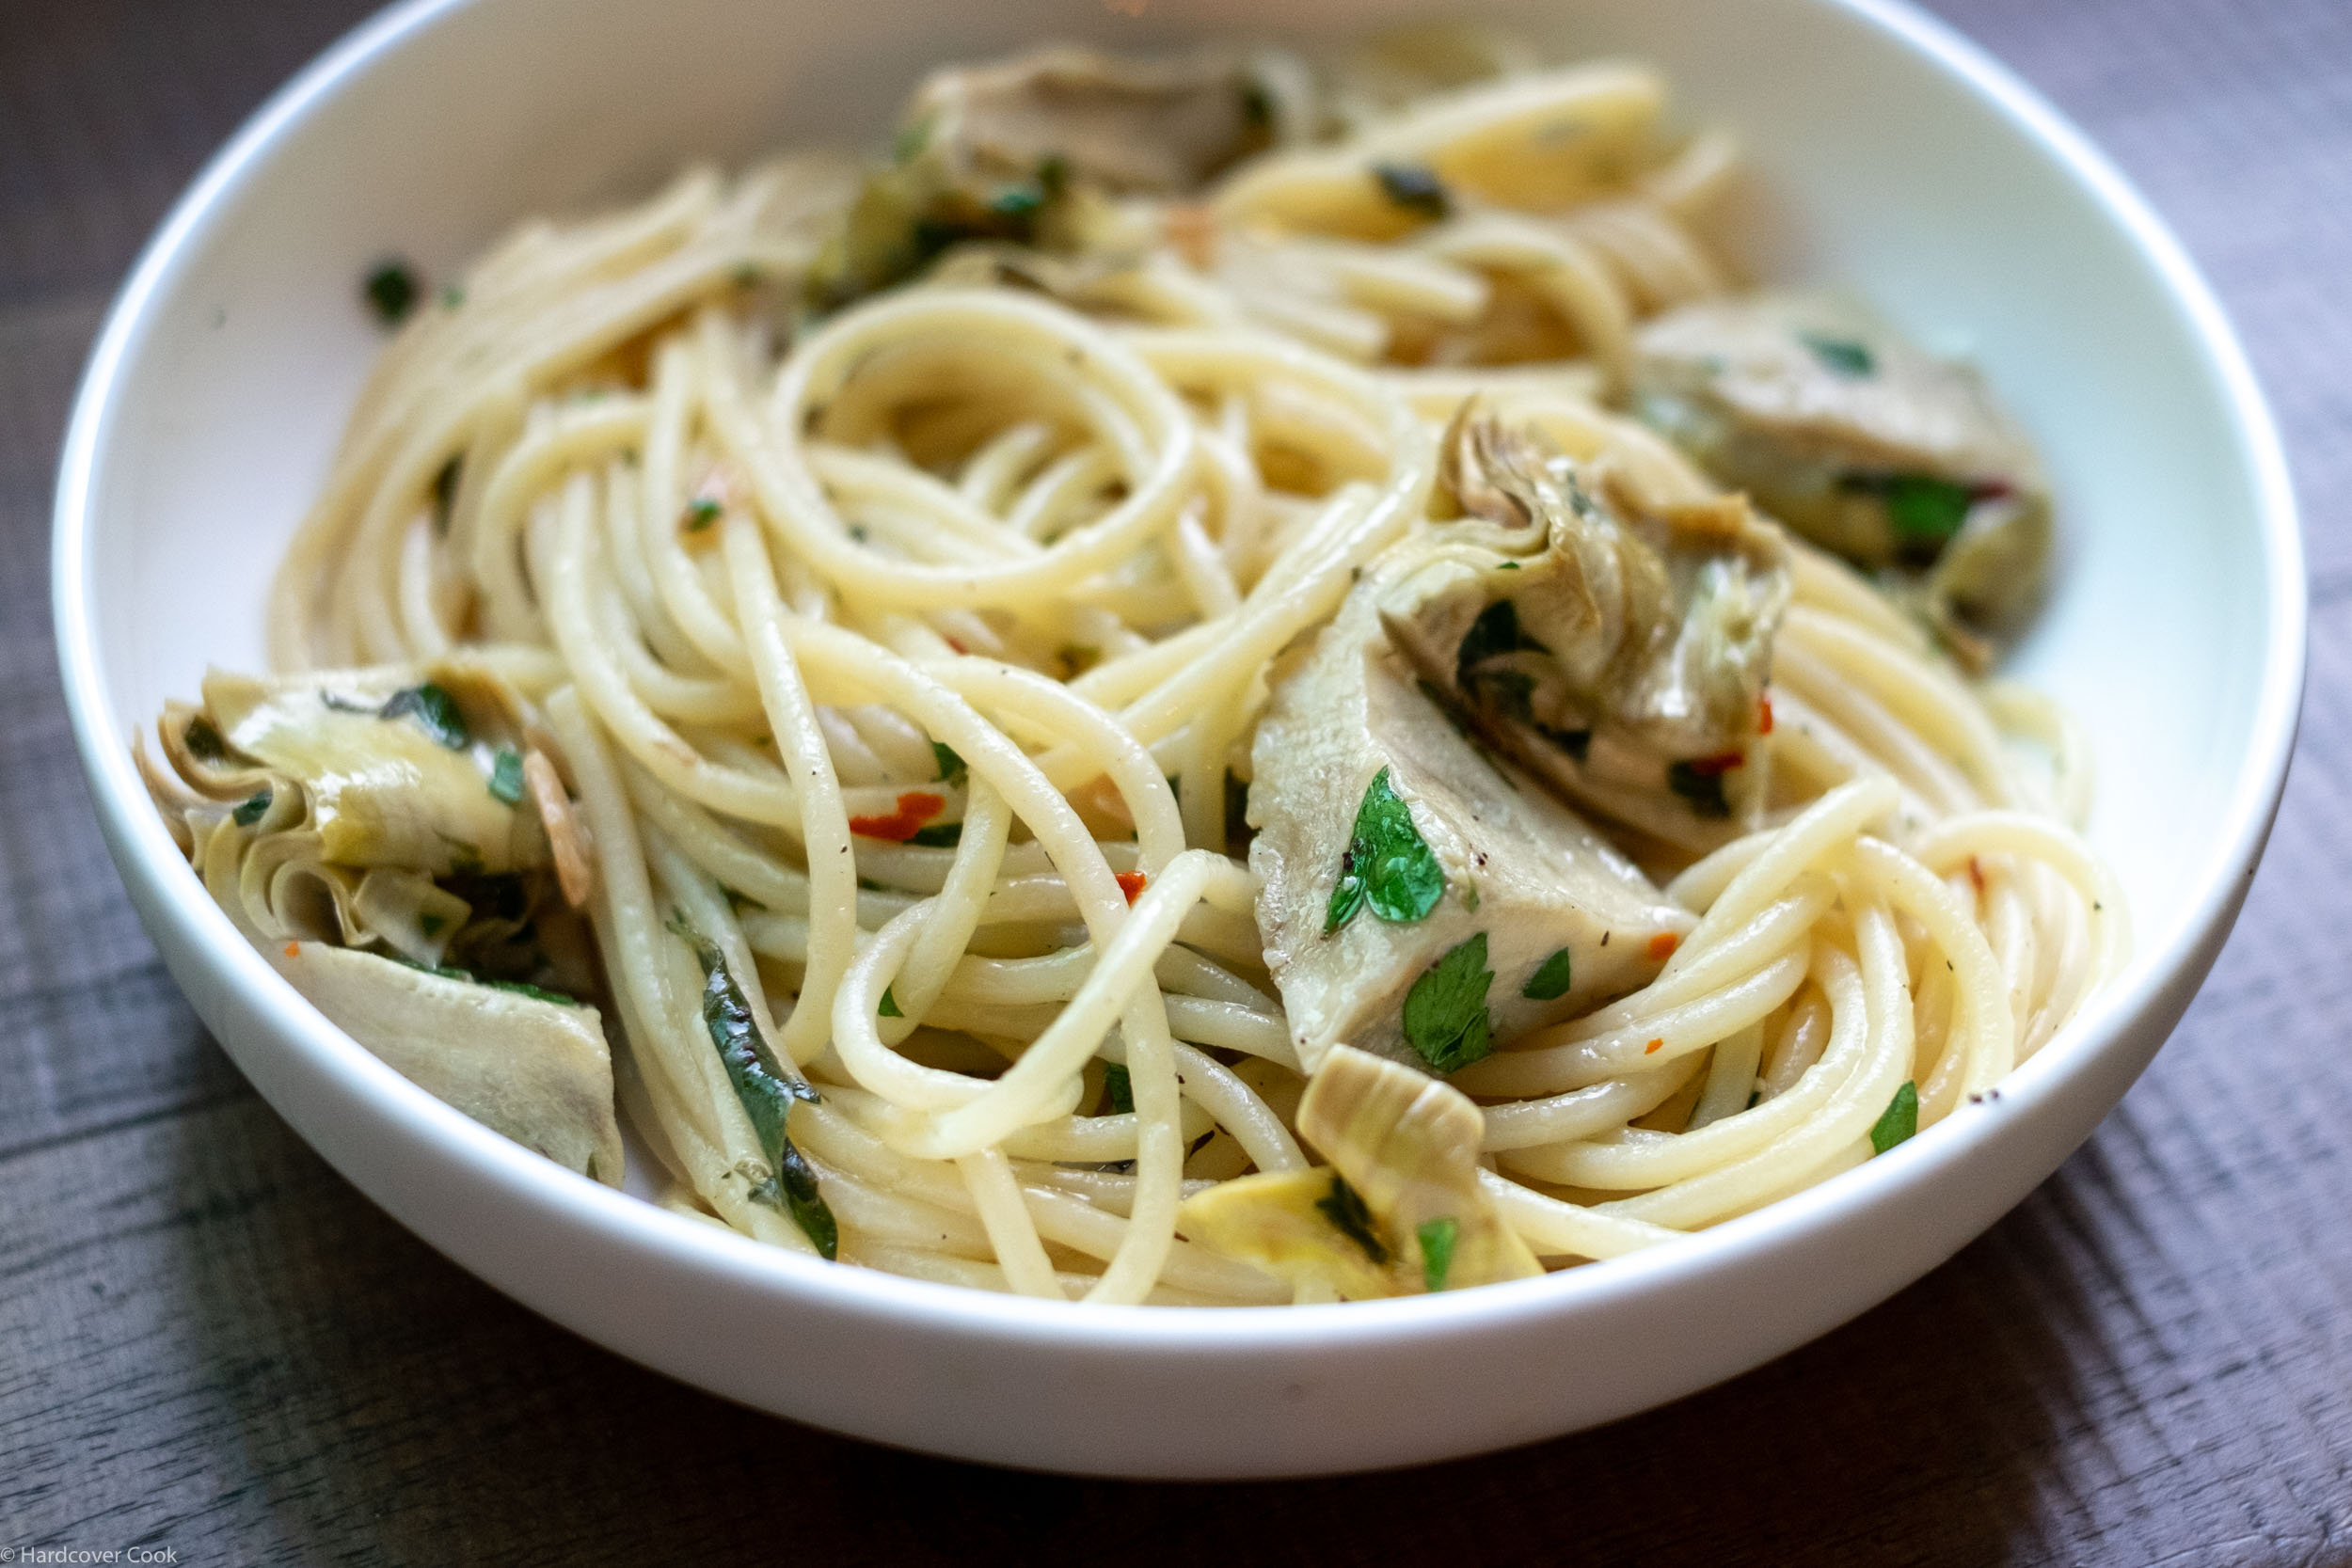 spaghetti-with-quick-braised-artichoke-hearts-from-where-cooking-begins.jpg